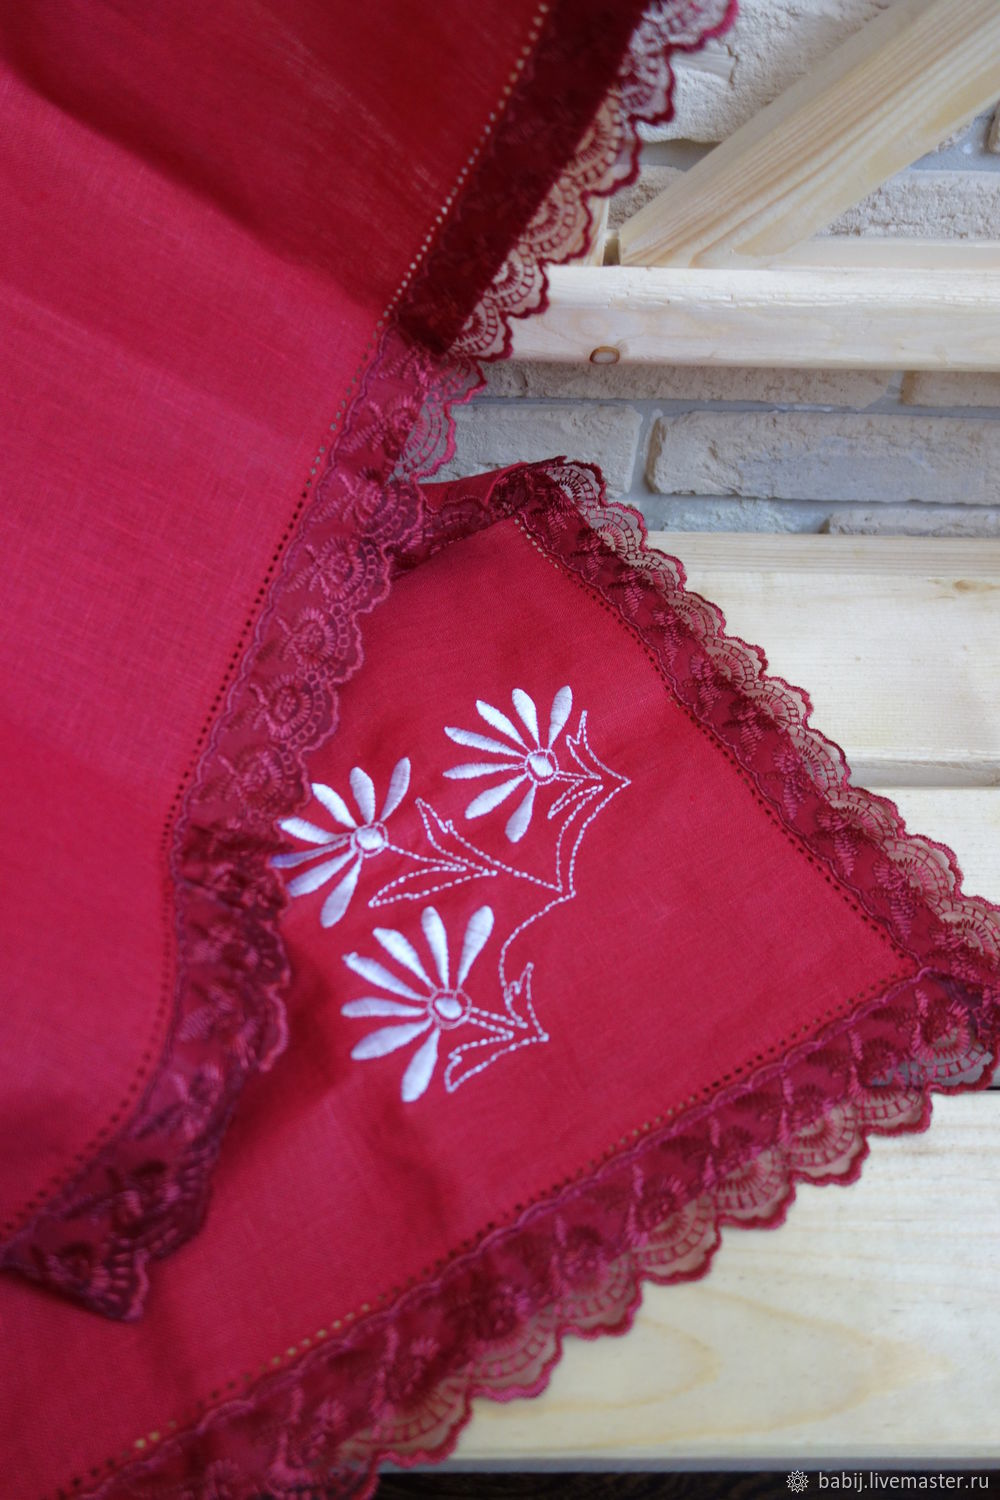 Linen tablecloth with embroidery, Tablecloths, Kostroma,  Фото №1